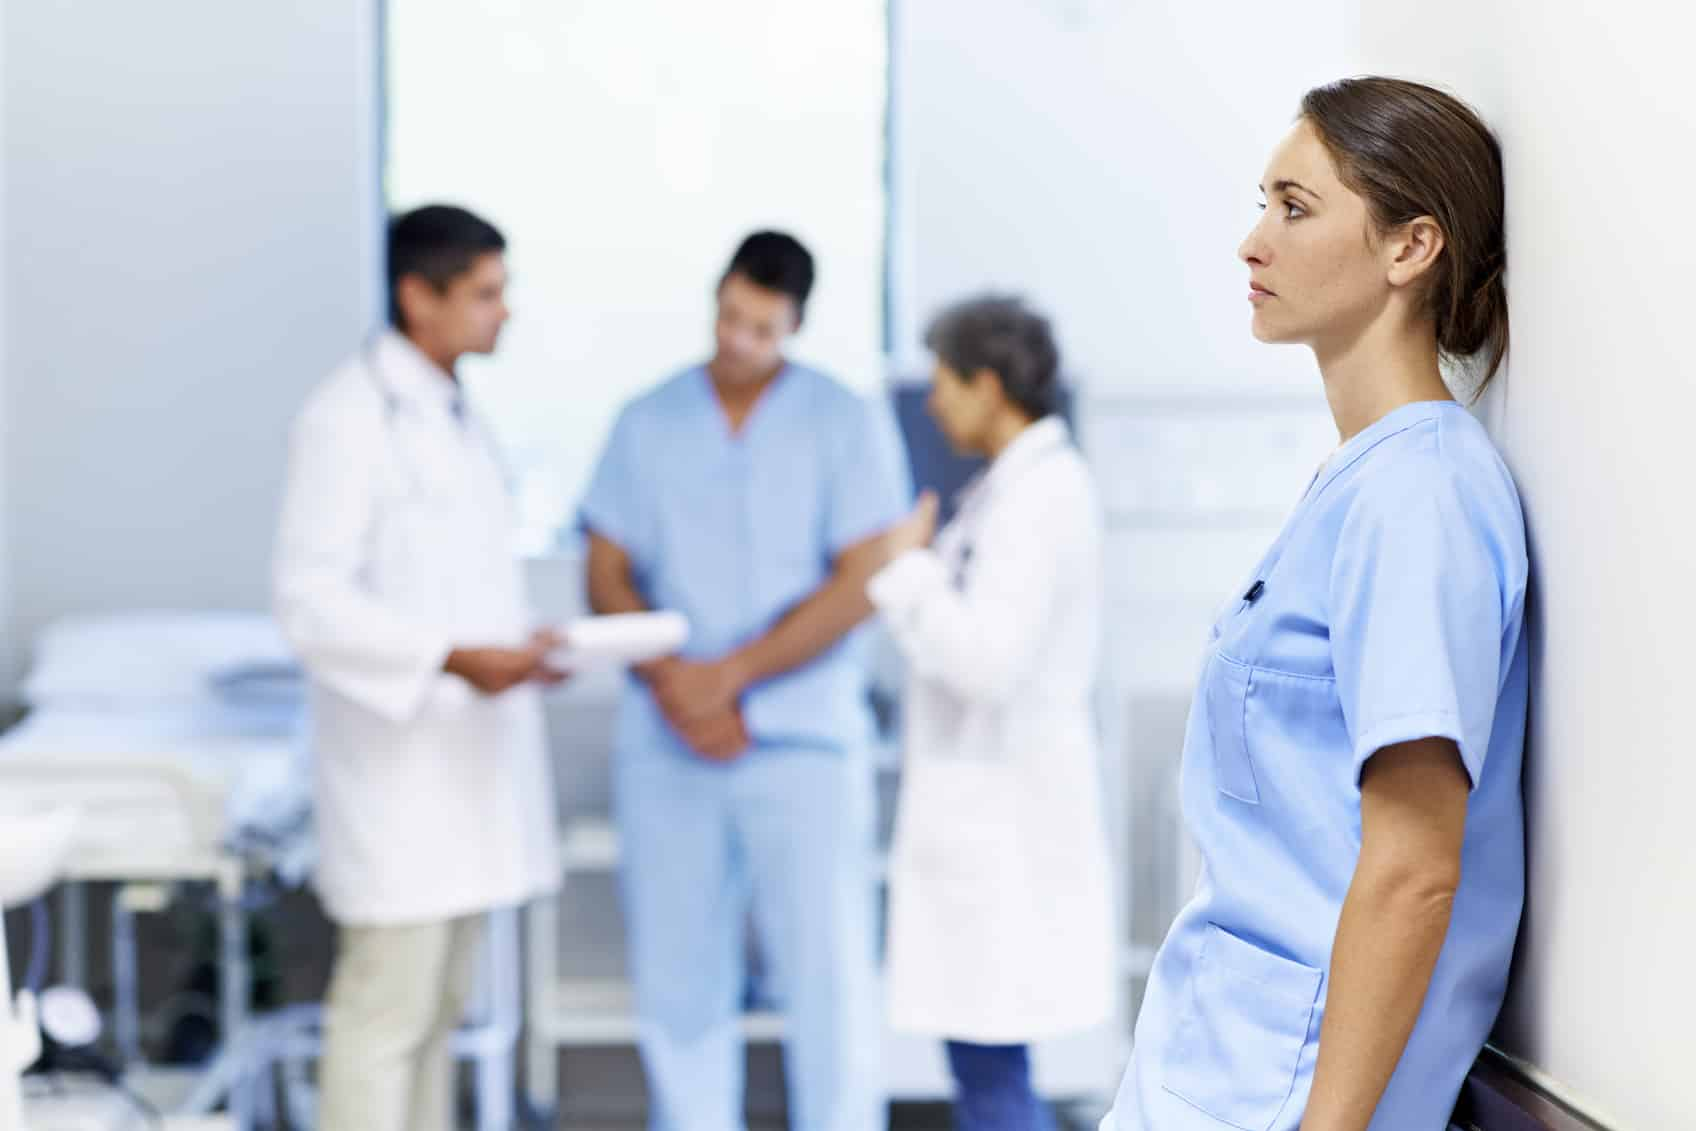 Shot of a tired looking nurse leaning against a wall with colleagues in the background